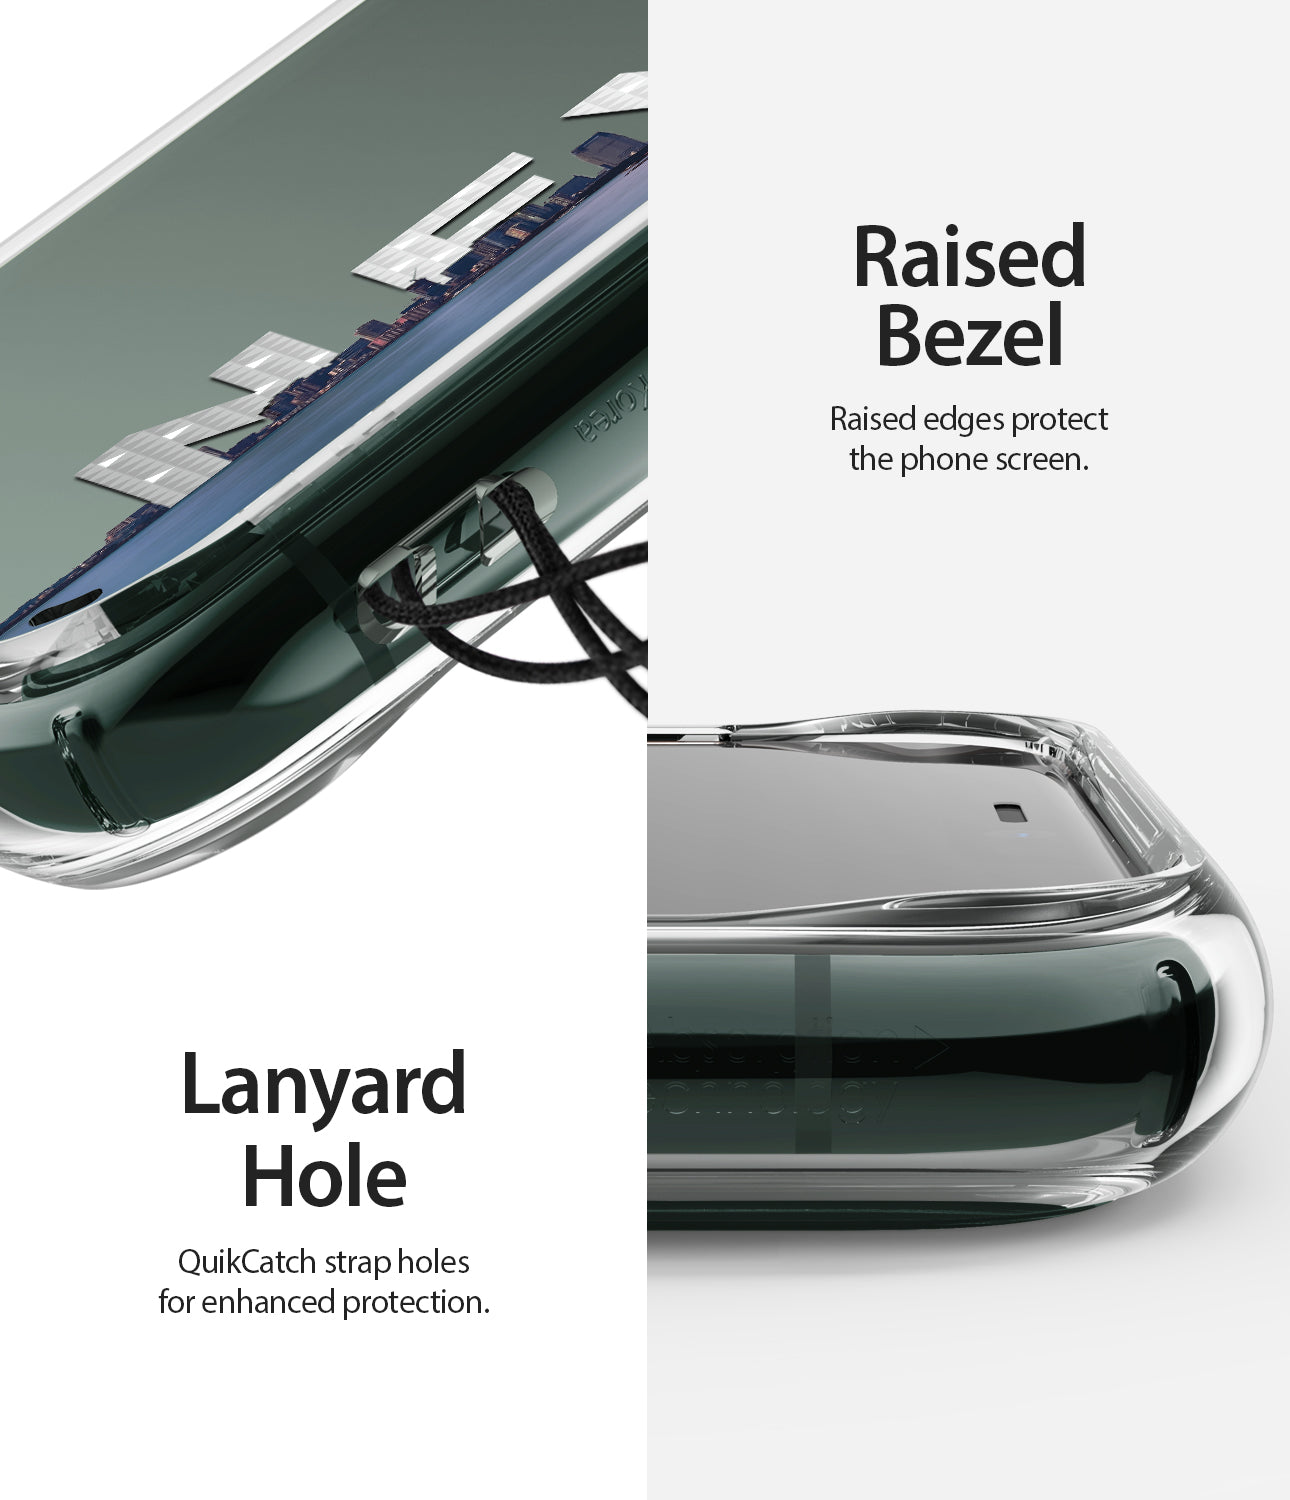 rasied bezel to protect the phone screen & camera / lanyard hole on the side to attach additional accessories